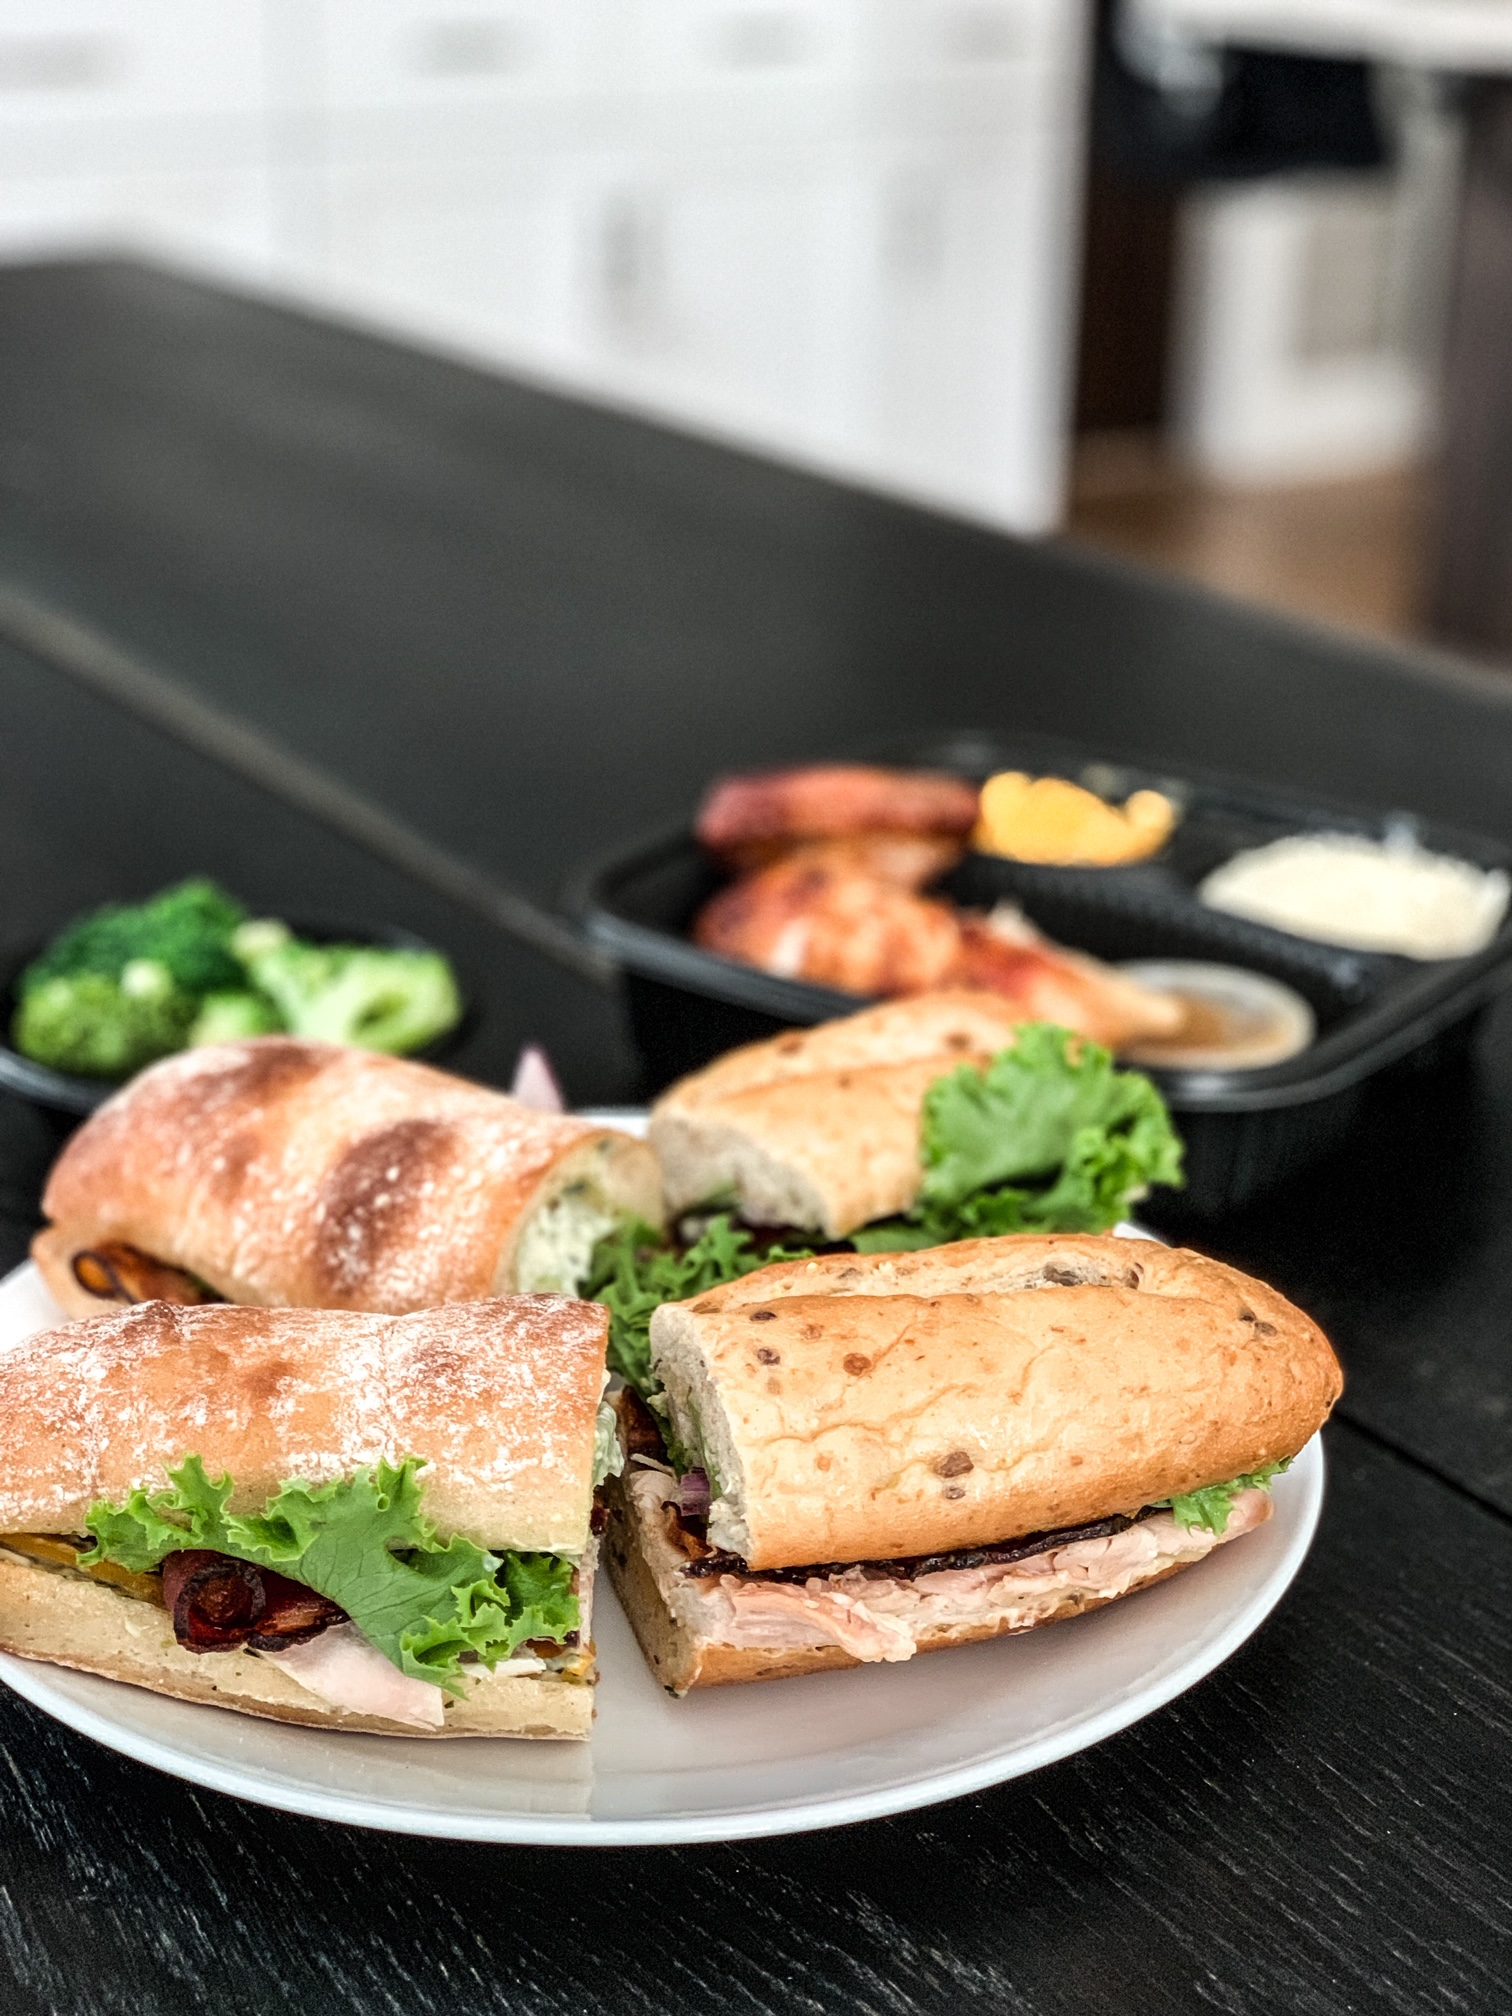 The Rotisserie Experts At Boston Market Create A New Boston Market Lunch Menu. New Boston Market Rotisserie Chicken Sandwich Menu. New Menu Items At Boston Market. Ideas for quick, convenient, better for you meals from Boston Market. #ad #BostonMarketLunch #LunchAtBostonMarket